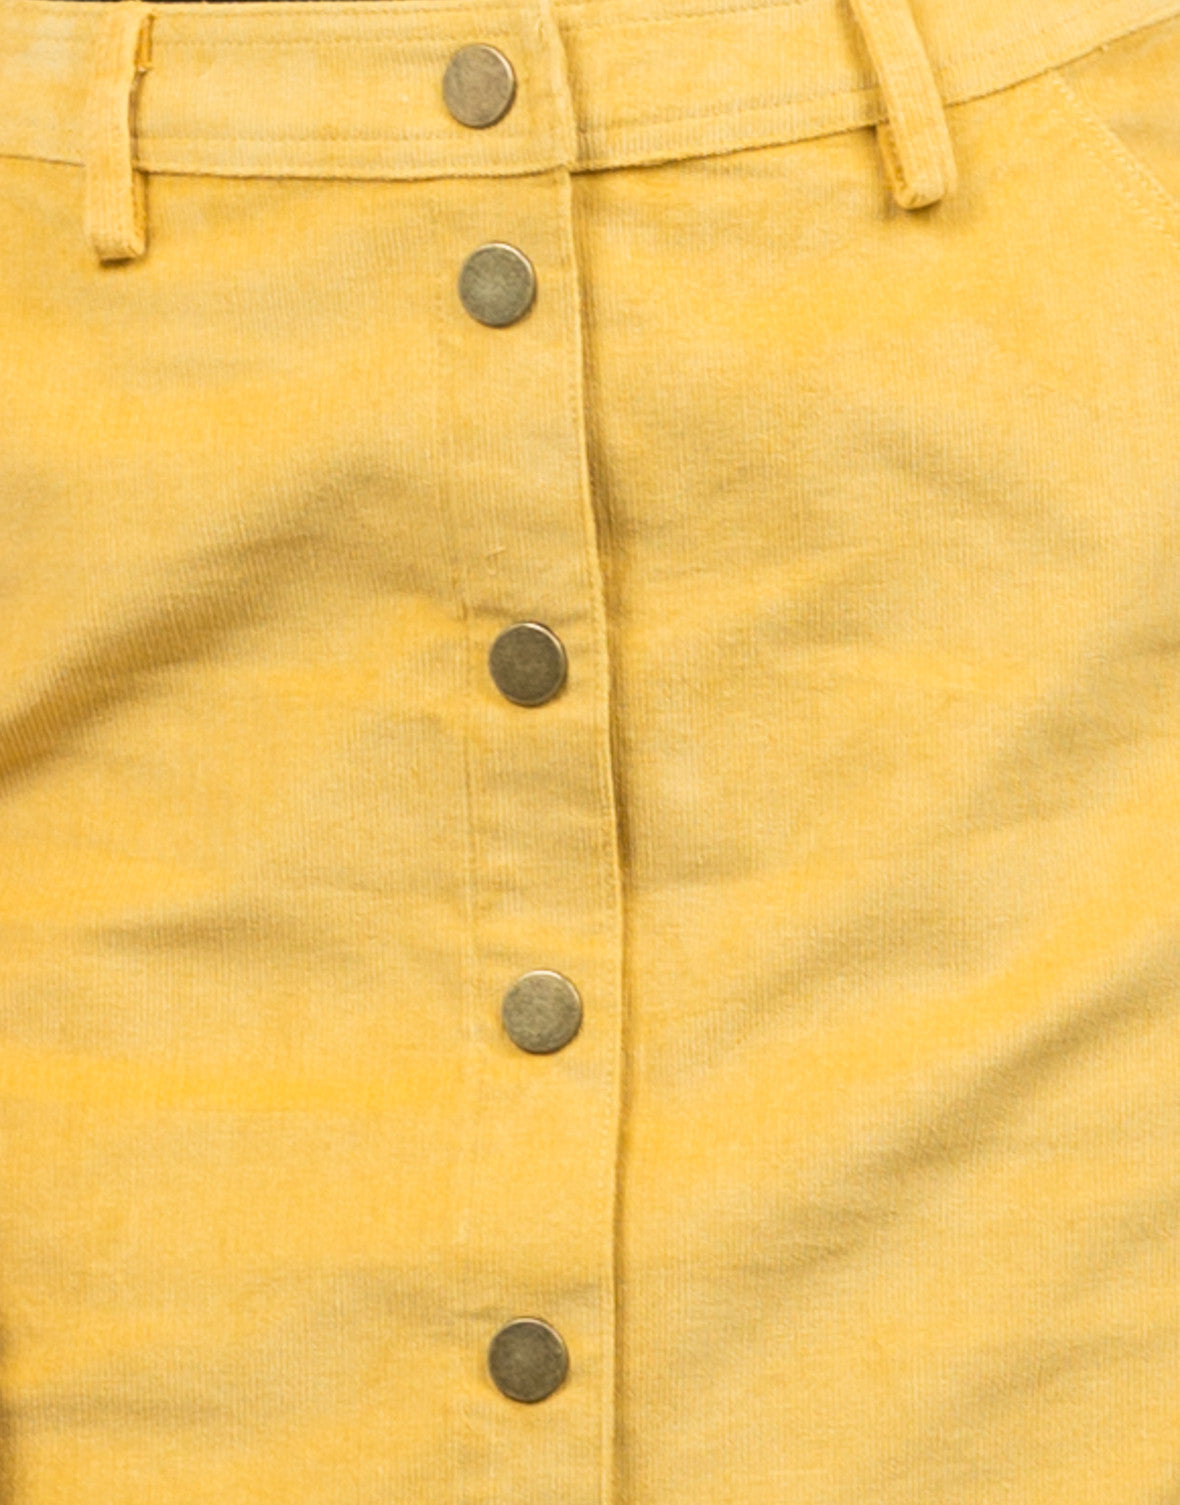 Detail of High Waisted Corduroy Skirt